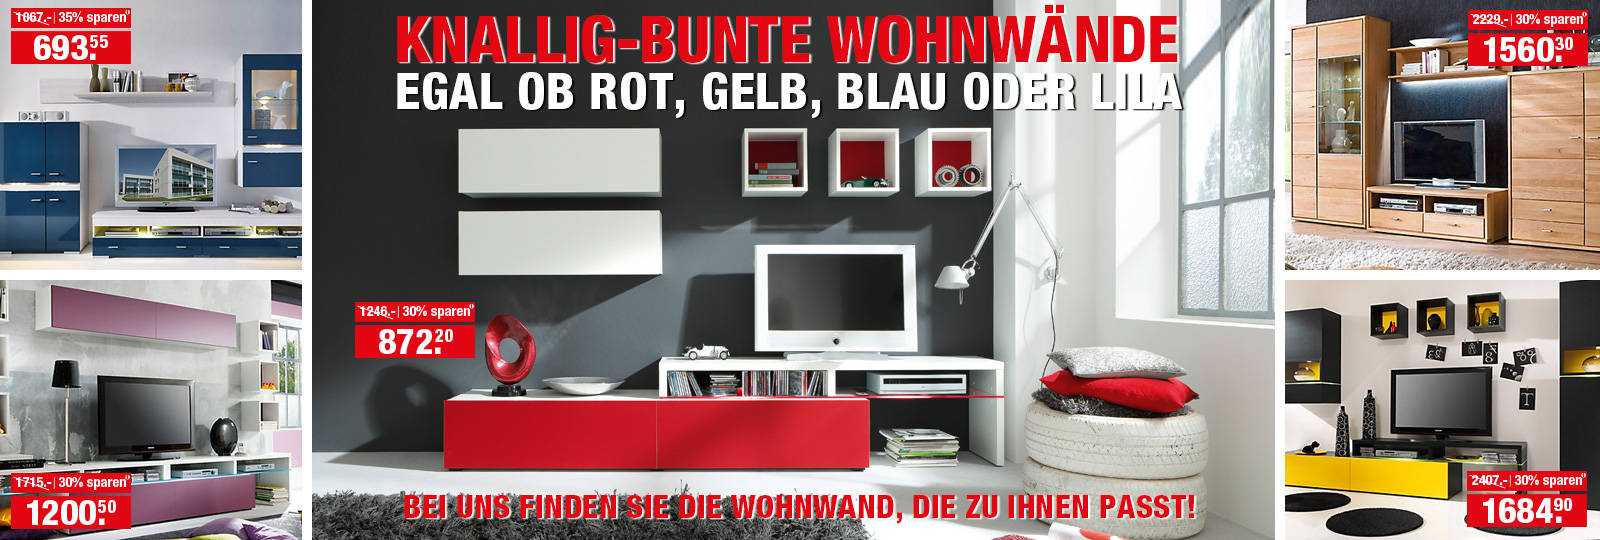 m bel mahler g nstige m bel online im m belhaus m bel mahler. Black Bedroom Furniture Sets. Home Design Ideas